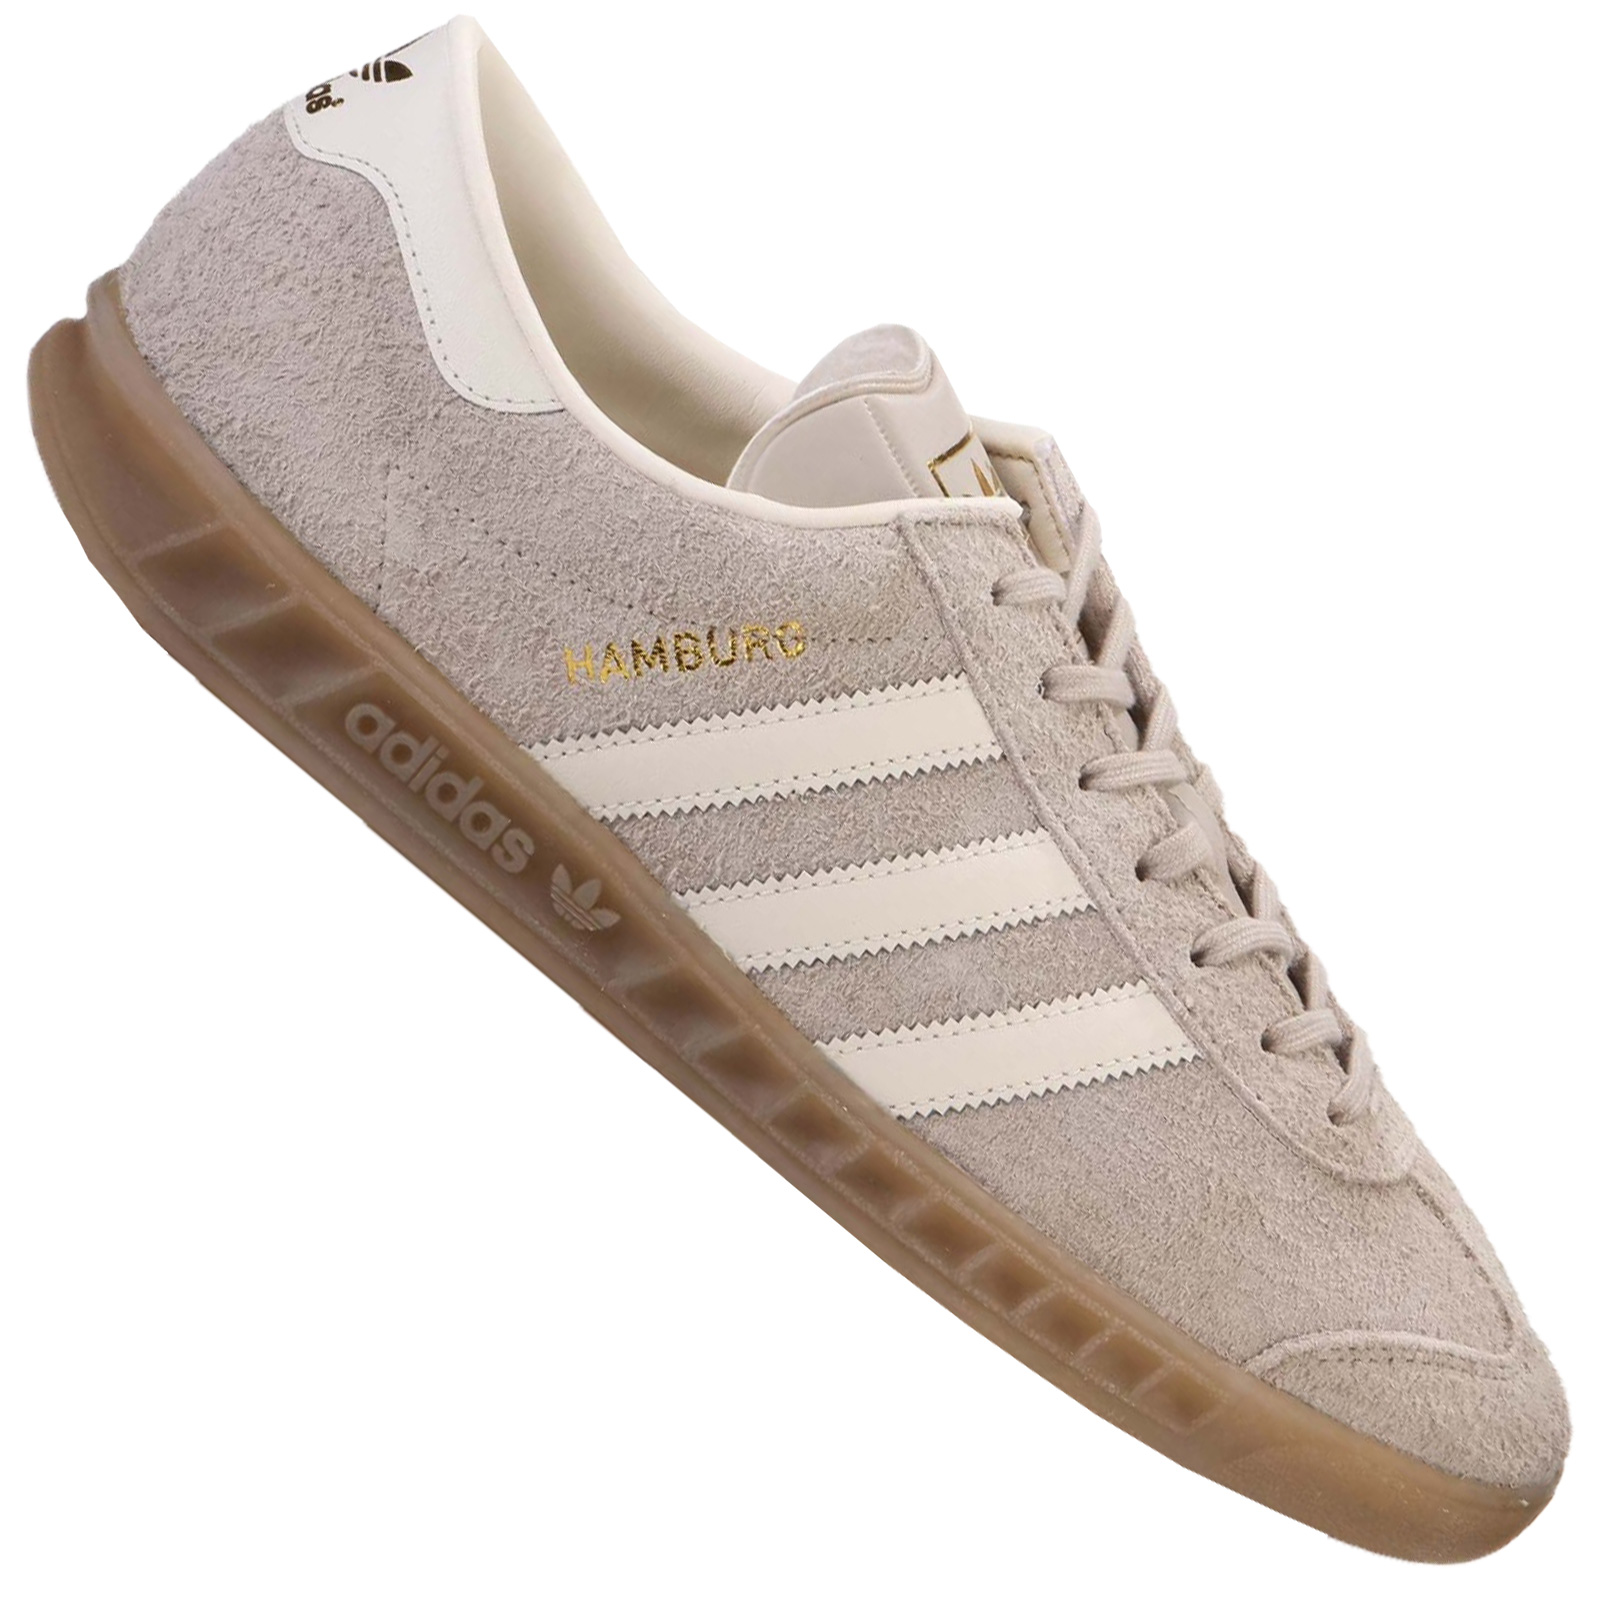 Details about Adidas Originals Hamburg Women's Sneakers Suede Trainers BB5110 Beige White